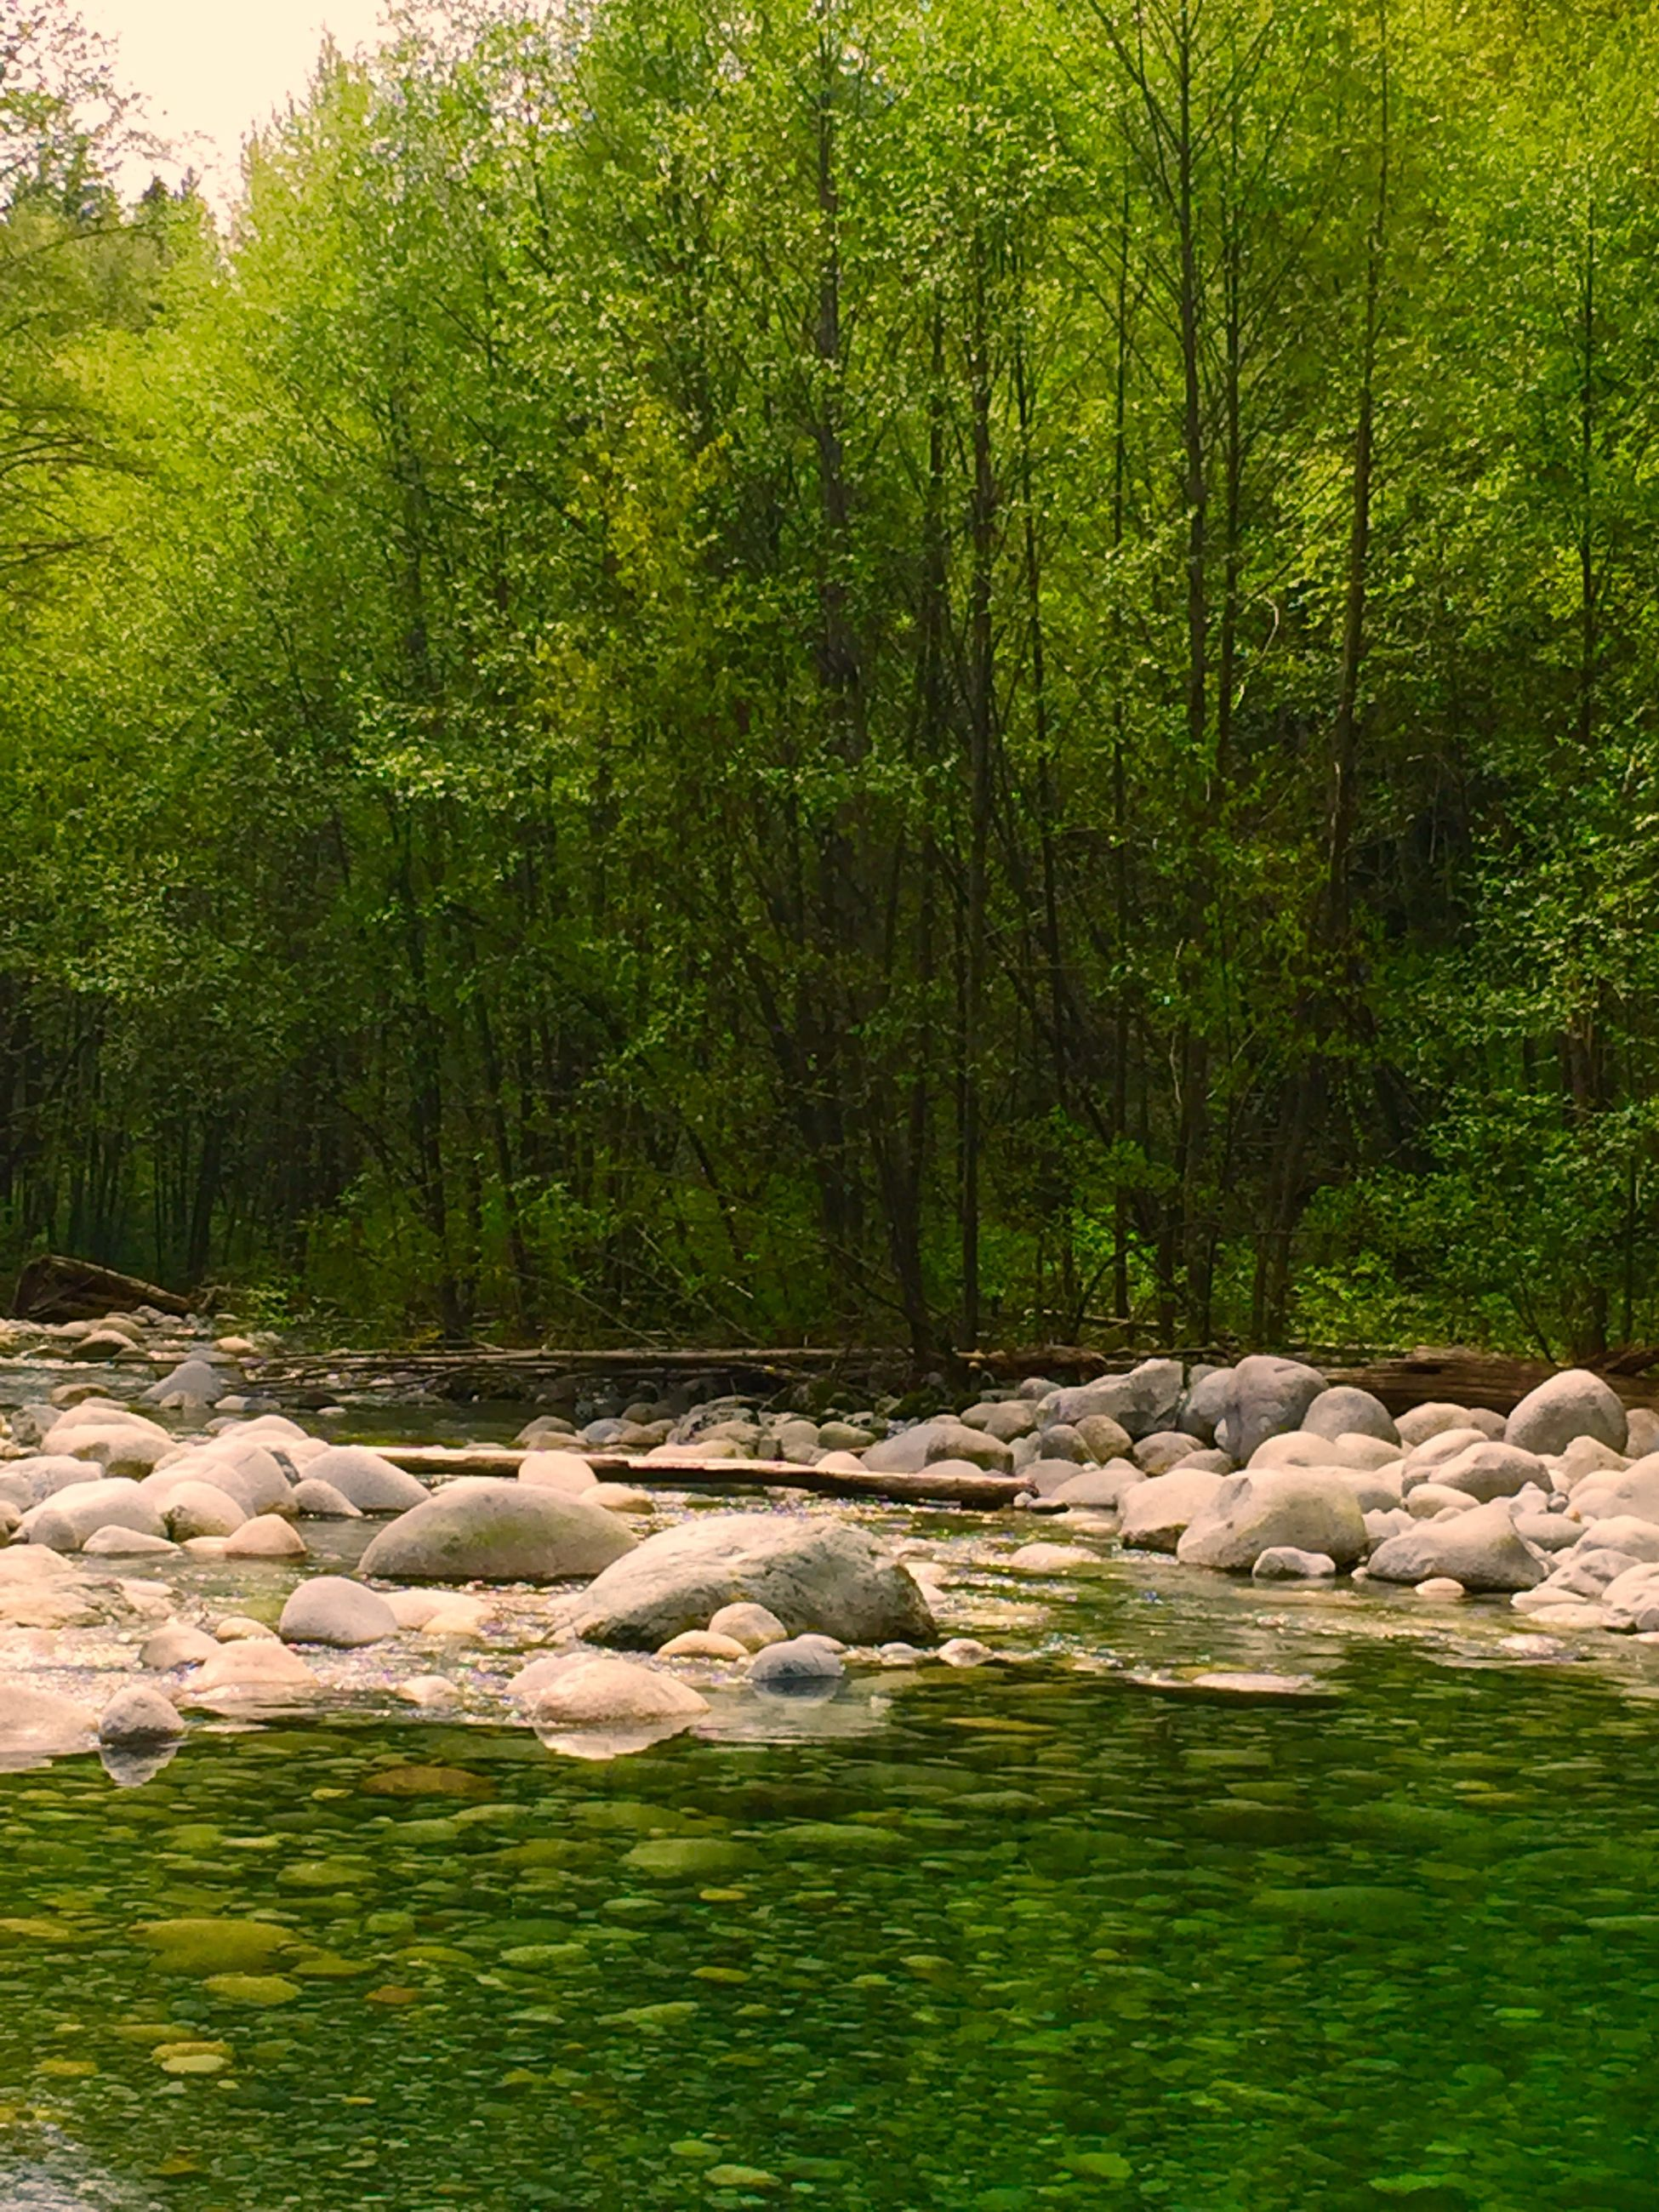 water, tree, tranquility, nature, tranquil scene, beauty in nature, scenics, rock - object, green color, growth, stream, grass, forest, river, plant, day, idyllic, rock, outdoors, non-urban scene